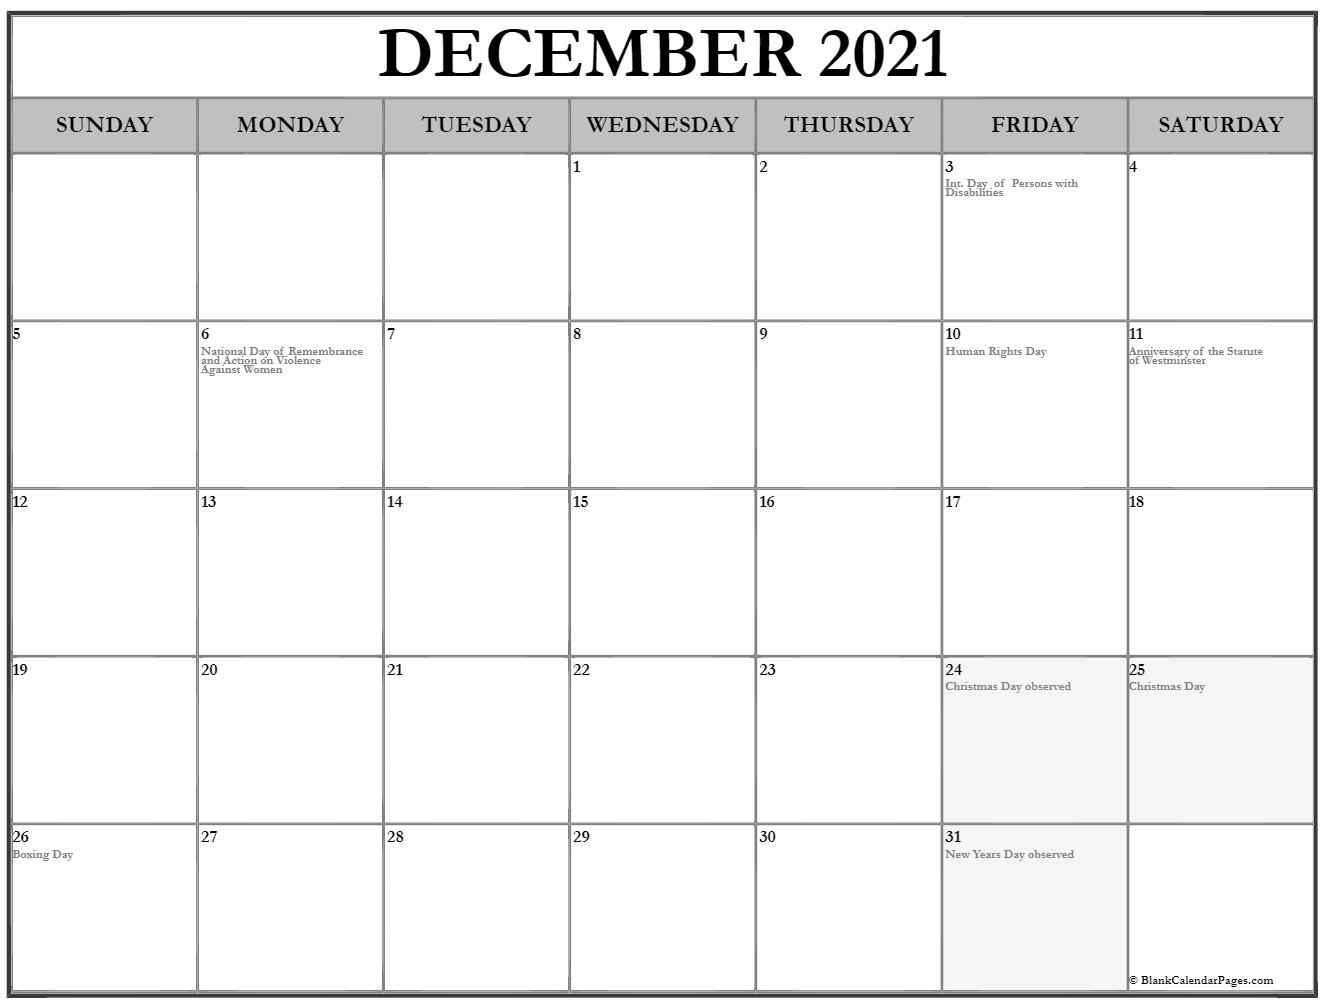 Month of December 2021 holidays Canada